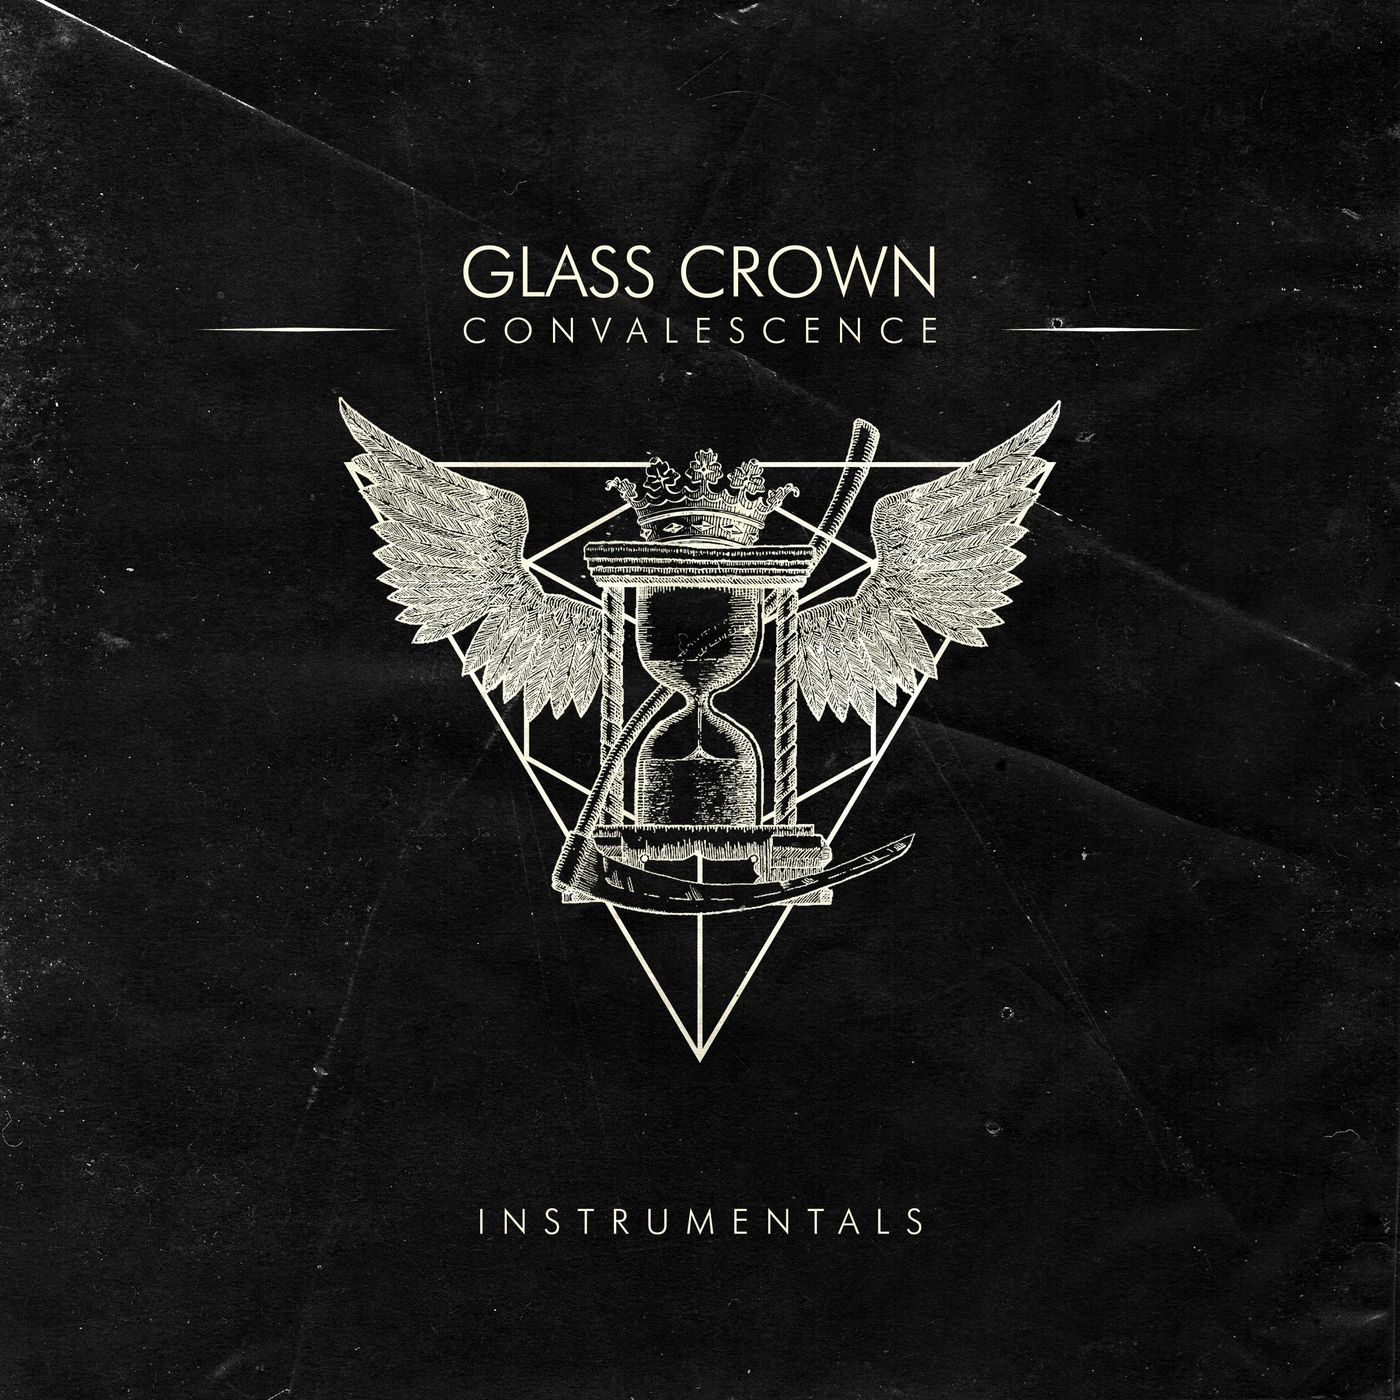 Glass Crown - Convalescence [EP] (Instrumental) (2021)